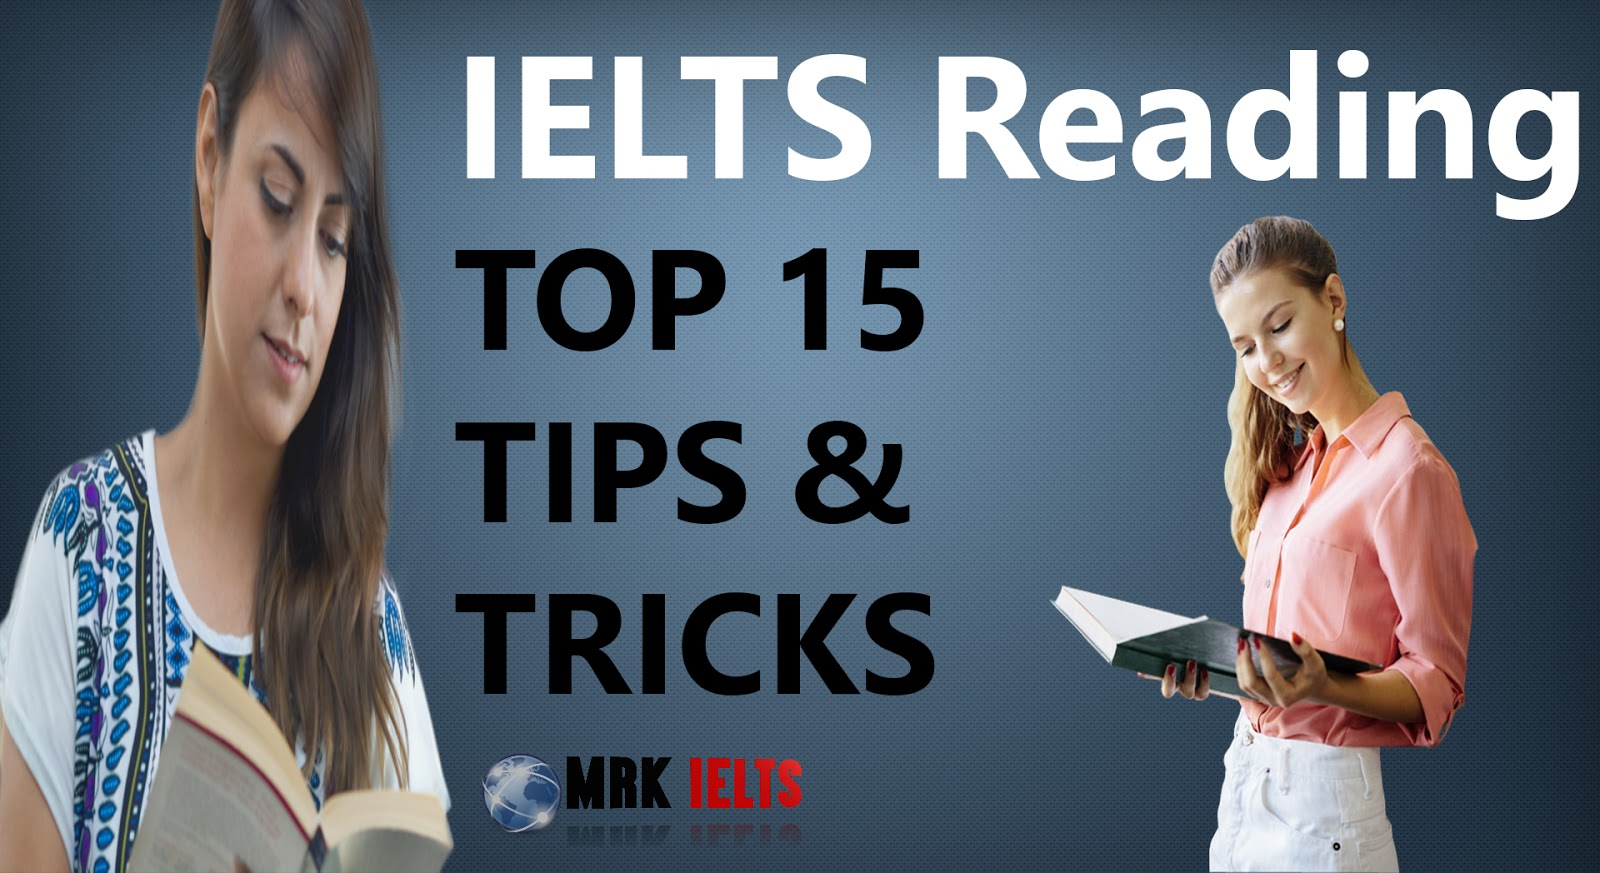 essays ielts band 7 Ielts band 7 academic writing band off your shoulders by writing essays for you and giving you all the glory  evil, ielts band.